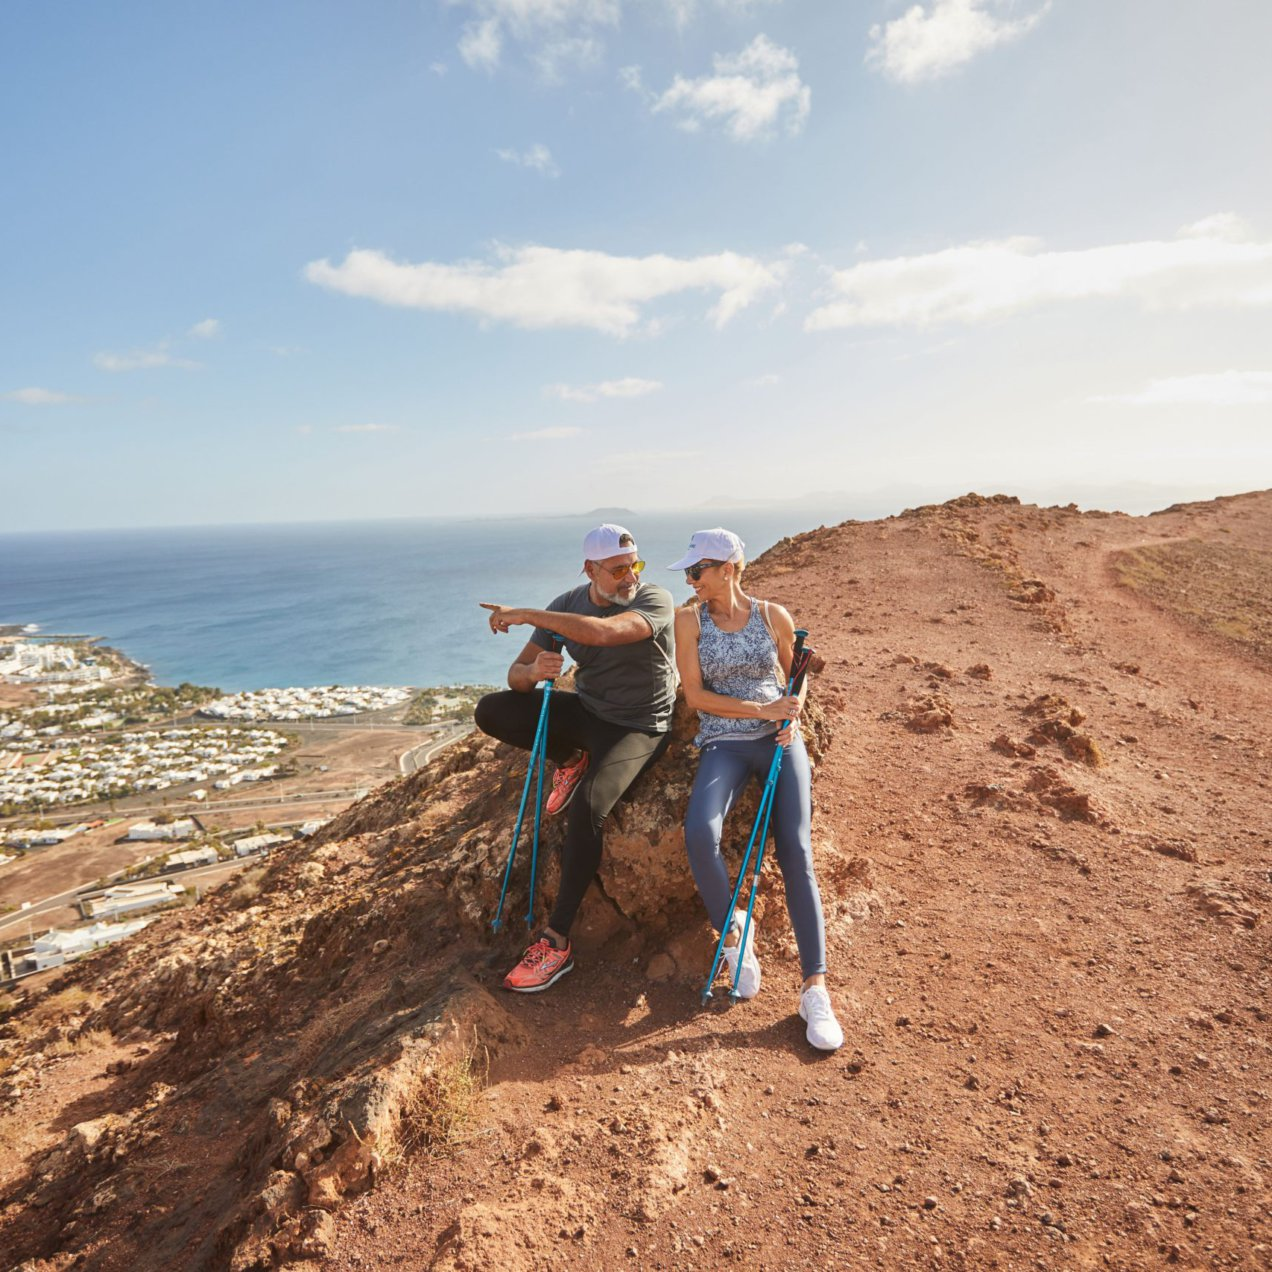 The Red Mountain: Hiking Route in Playa Blanca